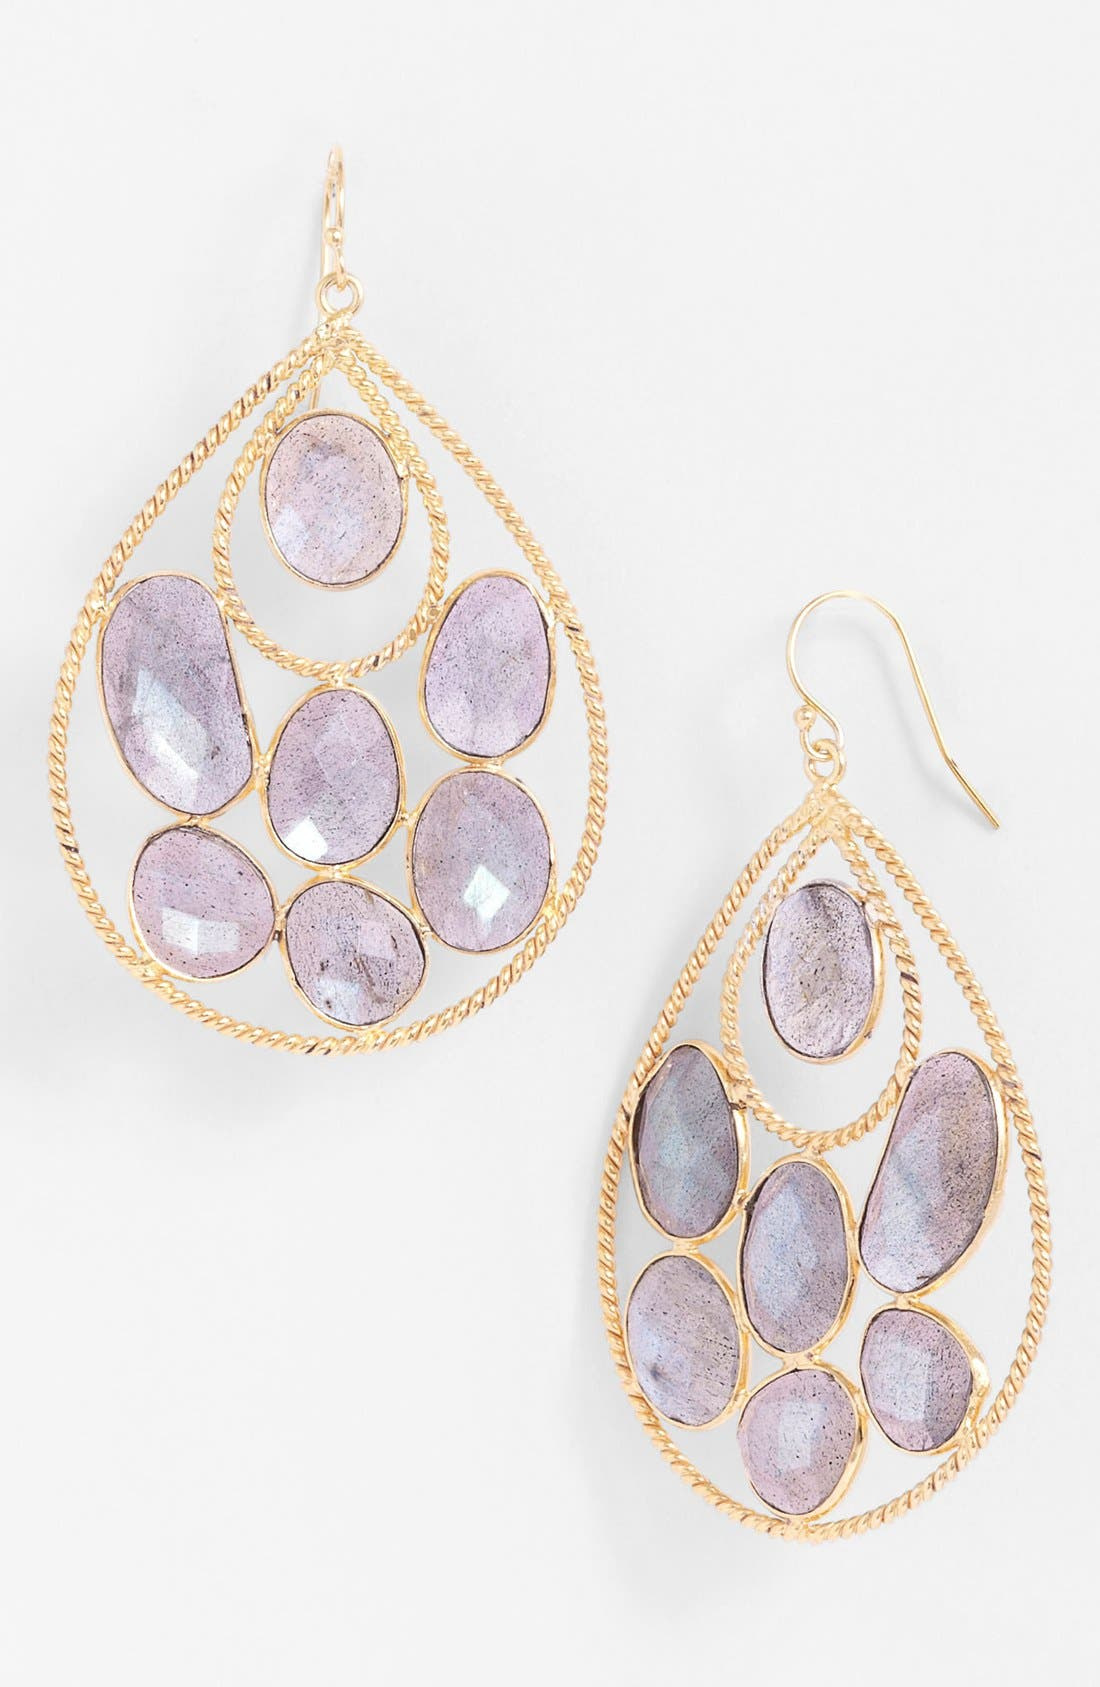 Main Image - NuNu Designs Cluster Stone Teardrop Earrings